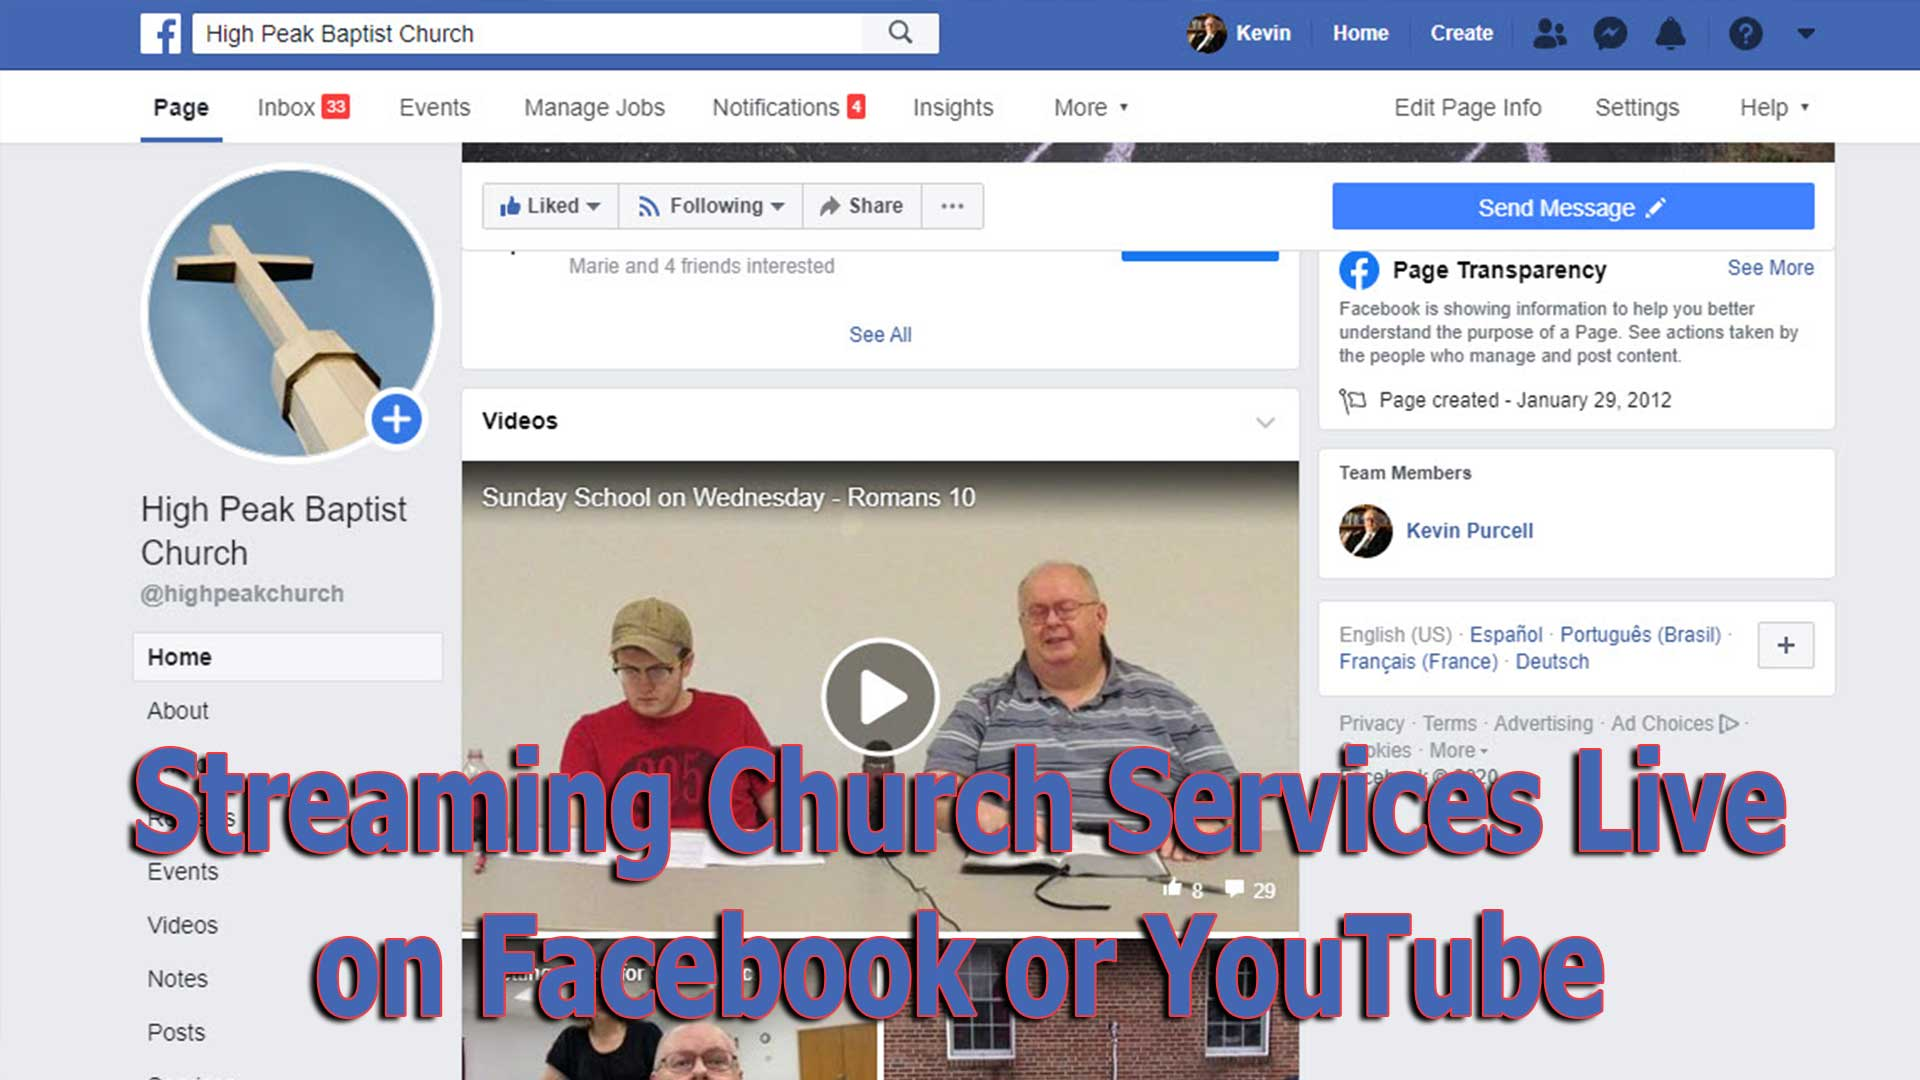 streaming church services live on facebook or youtube